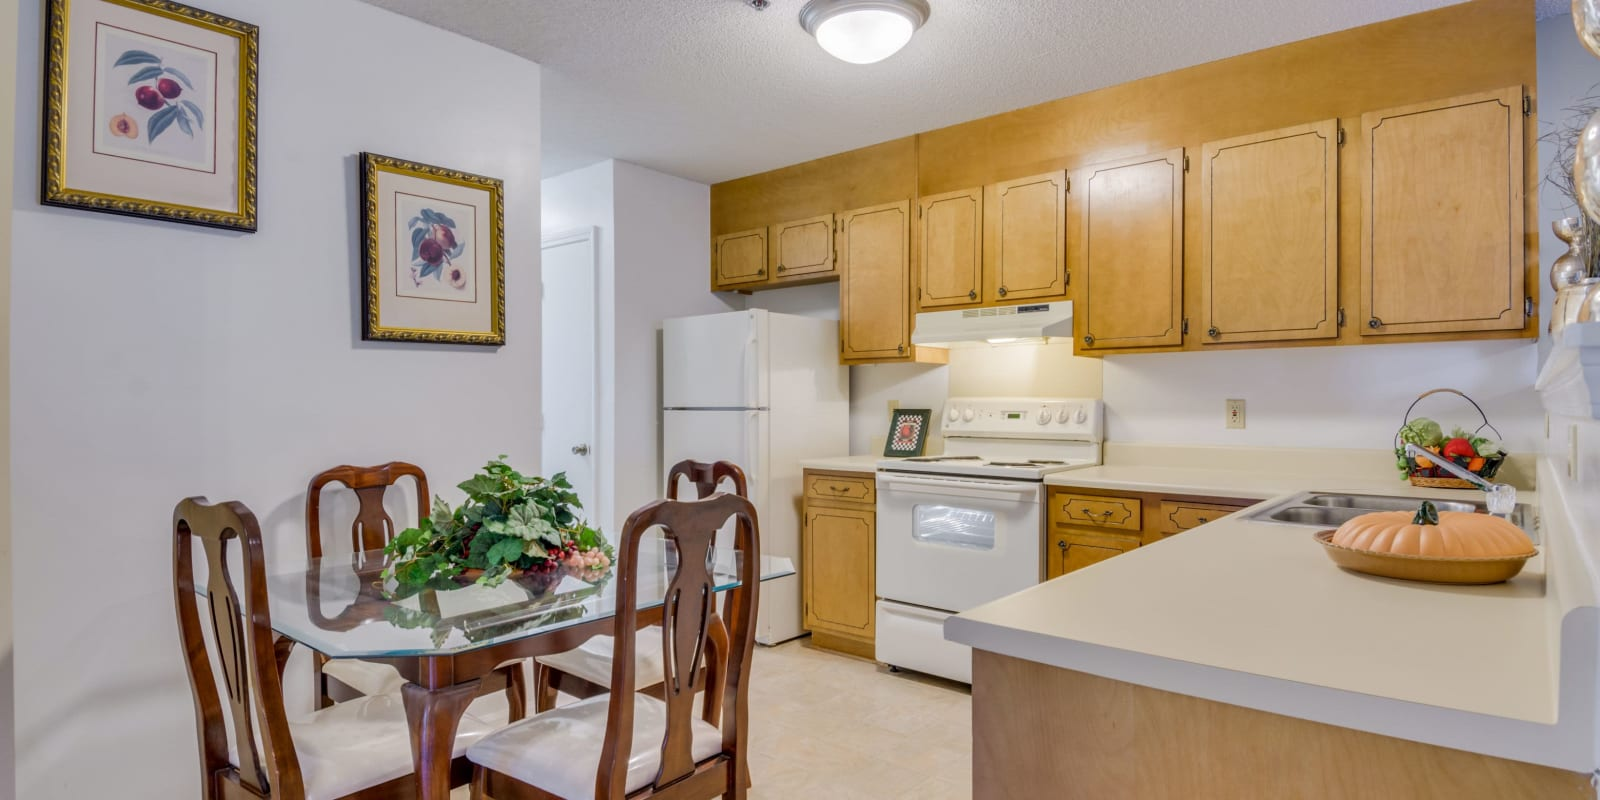 Kitchen with white appliances at Woodbrook Apartment Homes in Monroe, North Carolina